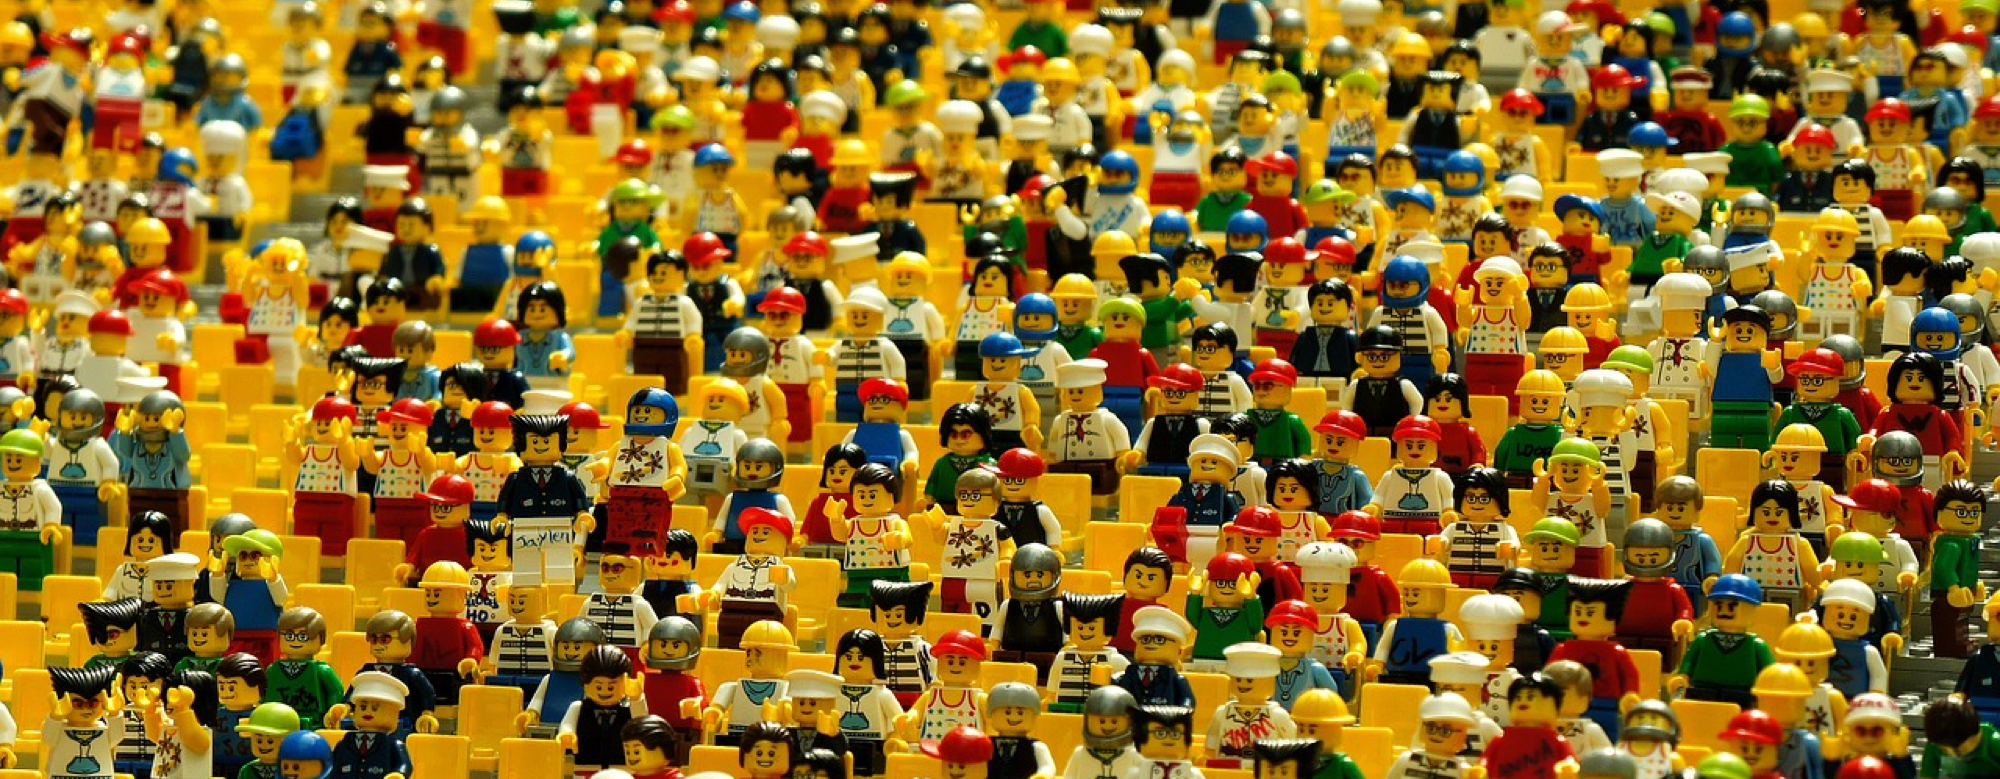 lego people.png